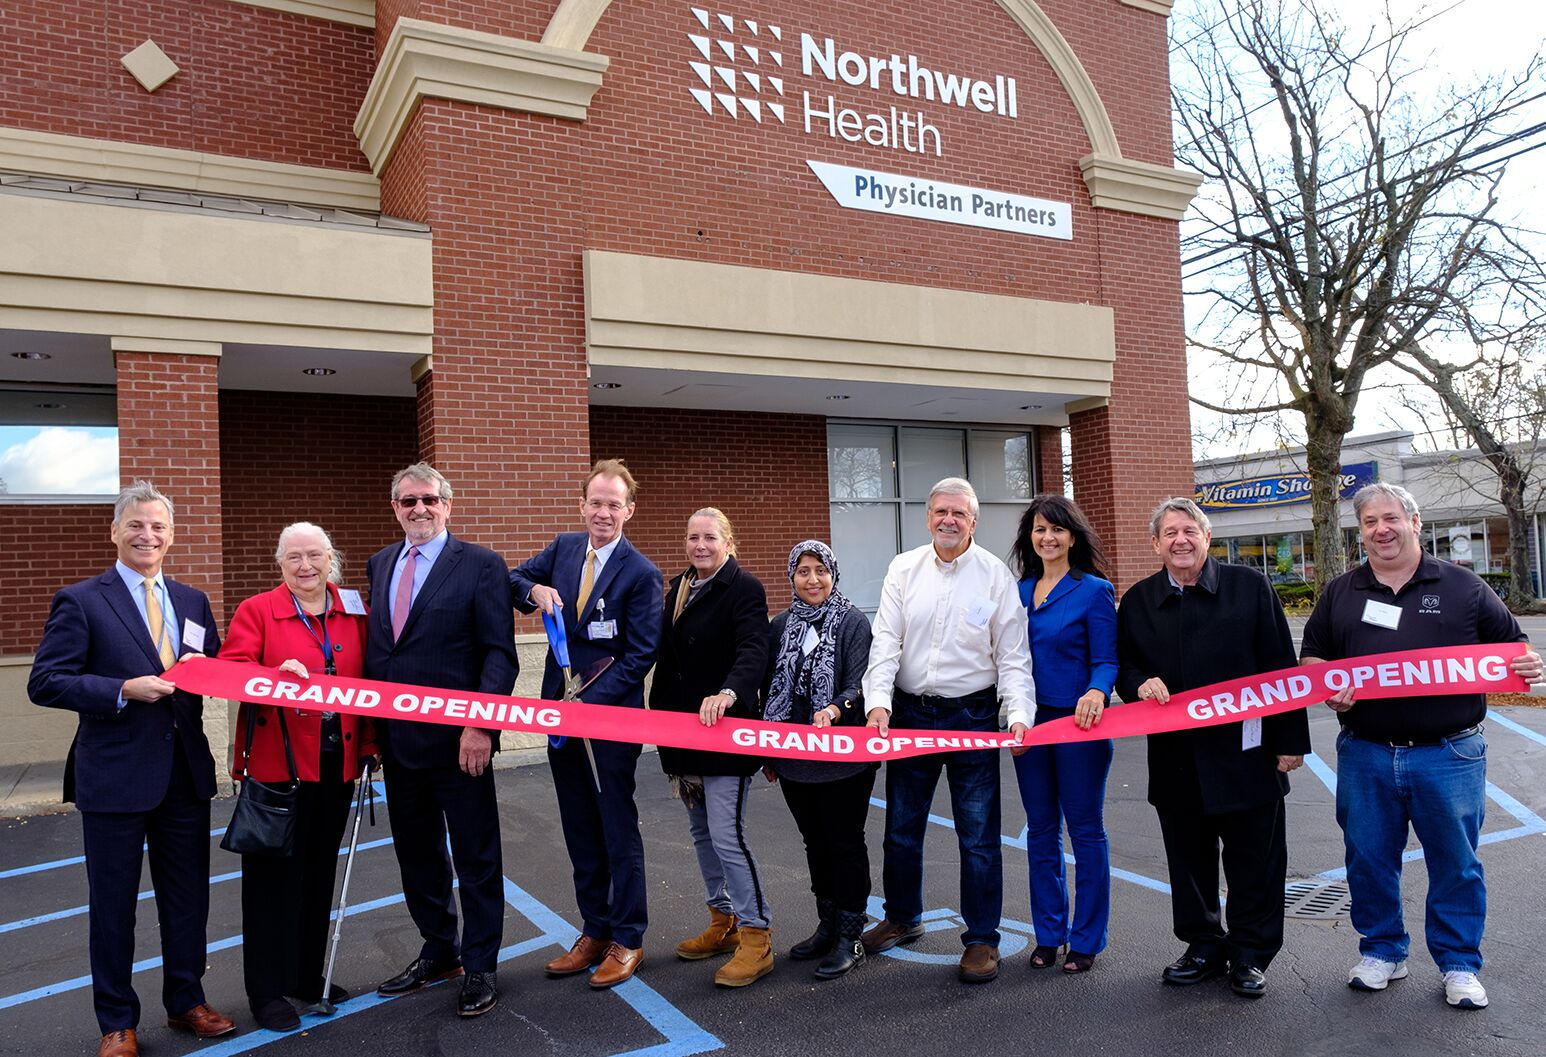 Northwell Health President and CEO Michael Dowling (third from left), along with Northwell and local dignitaries, cut the ribbon on of Northwell Health Physician Partners' Merrick facility.